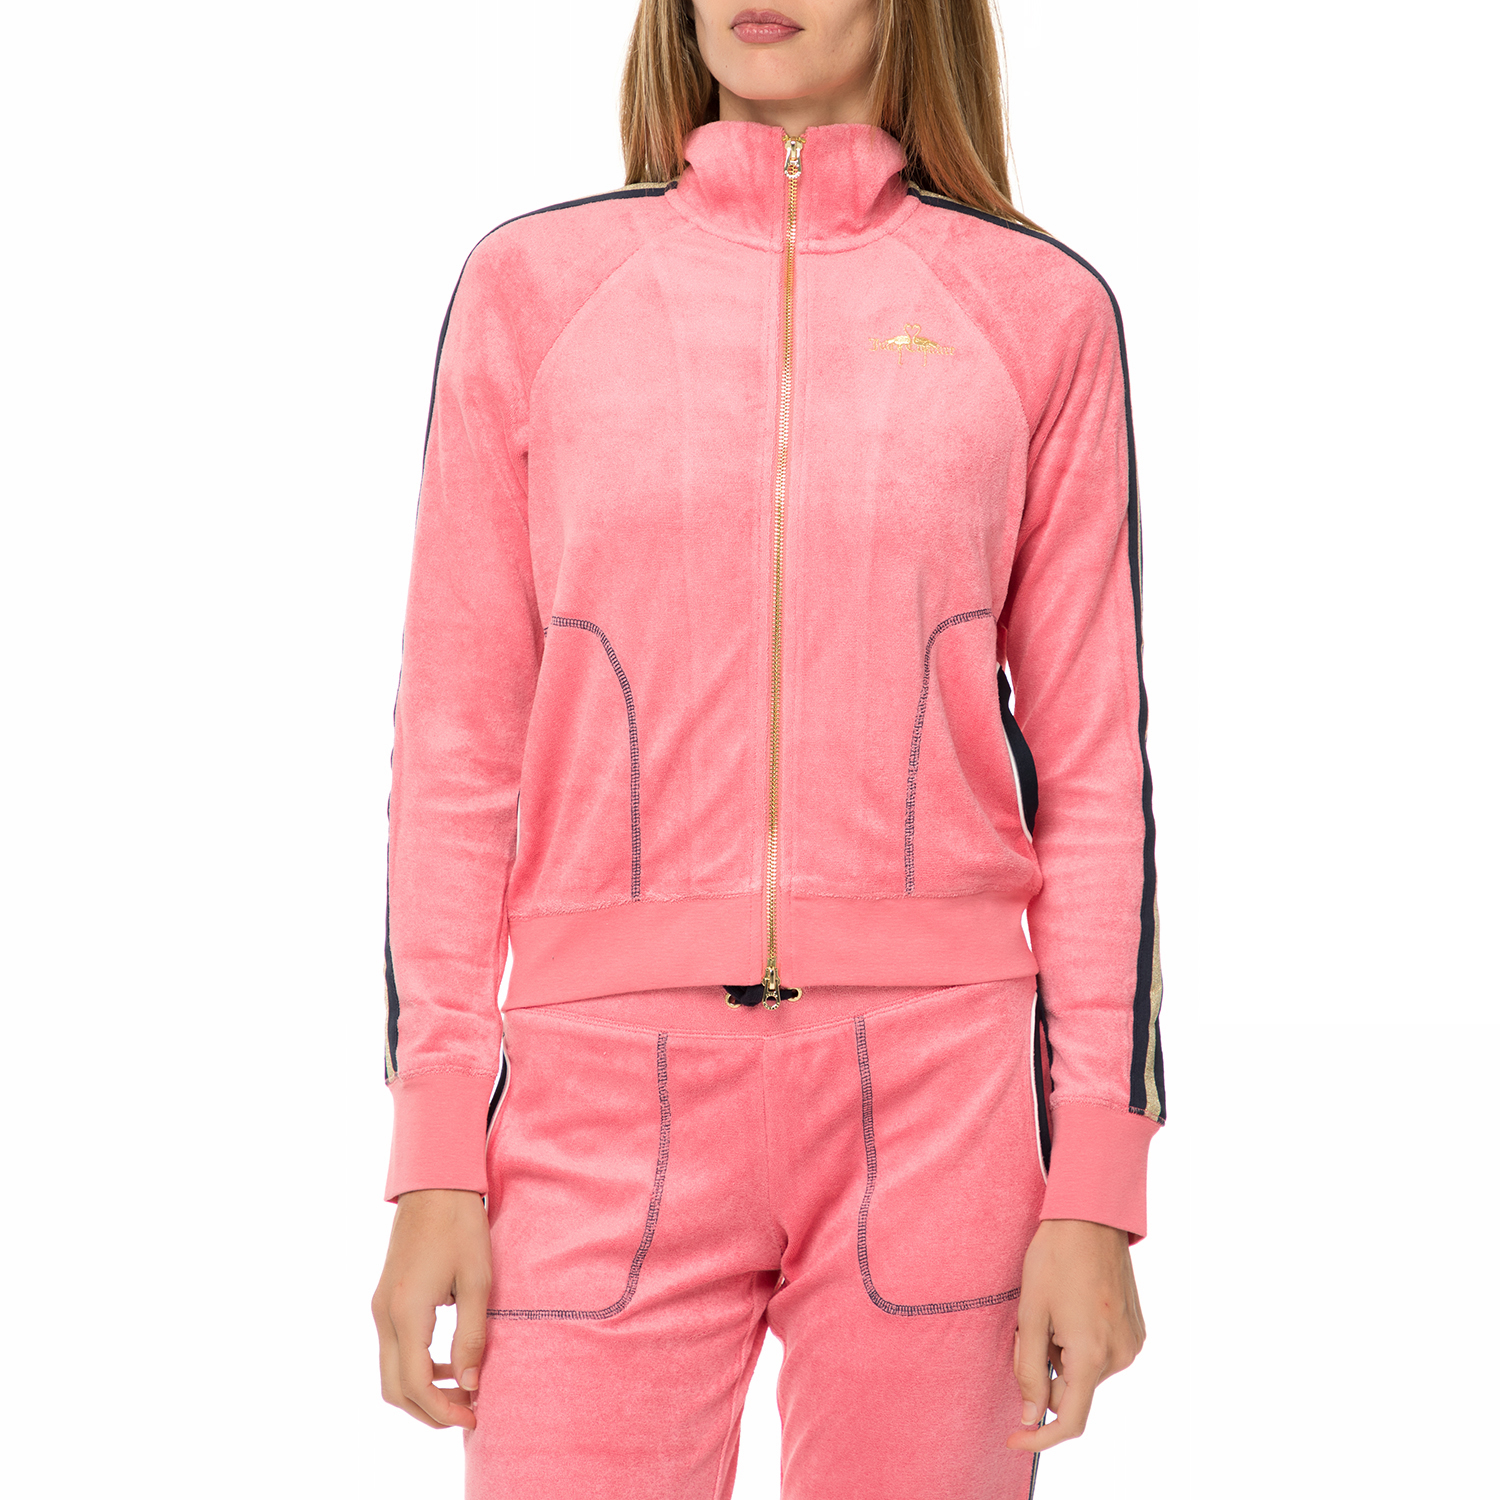 JUICY COUTURE – Γυναικεία φούτερ ζακέτα JUICY COUTURE MICROTERRY FLAMINGO  ροζ c7fa4bb8590